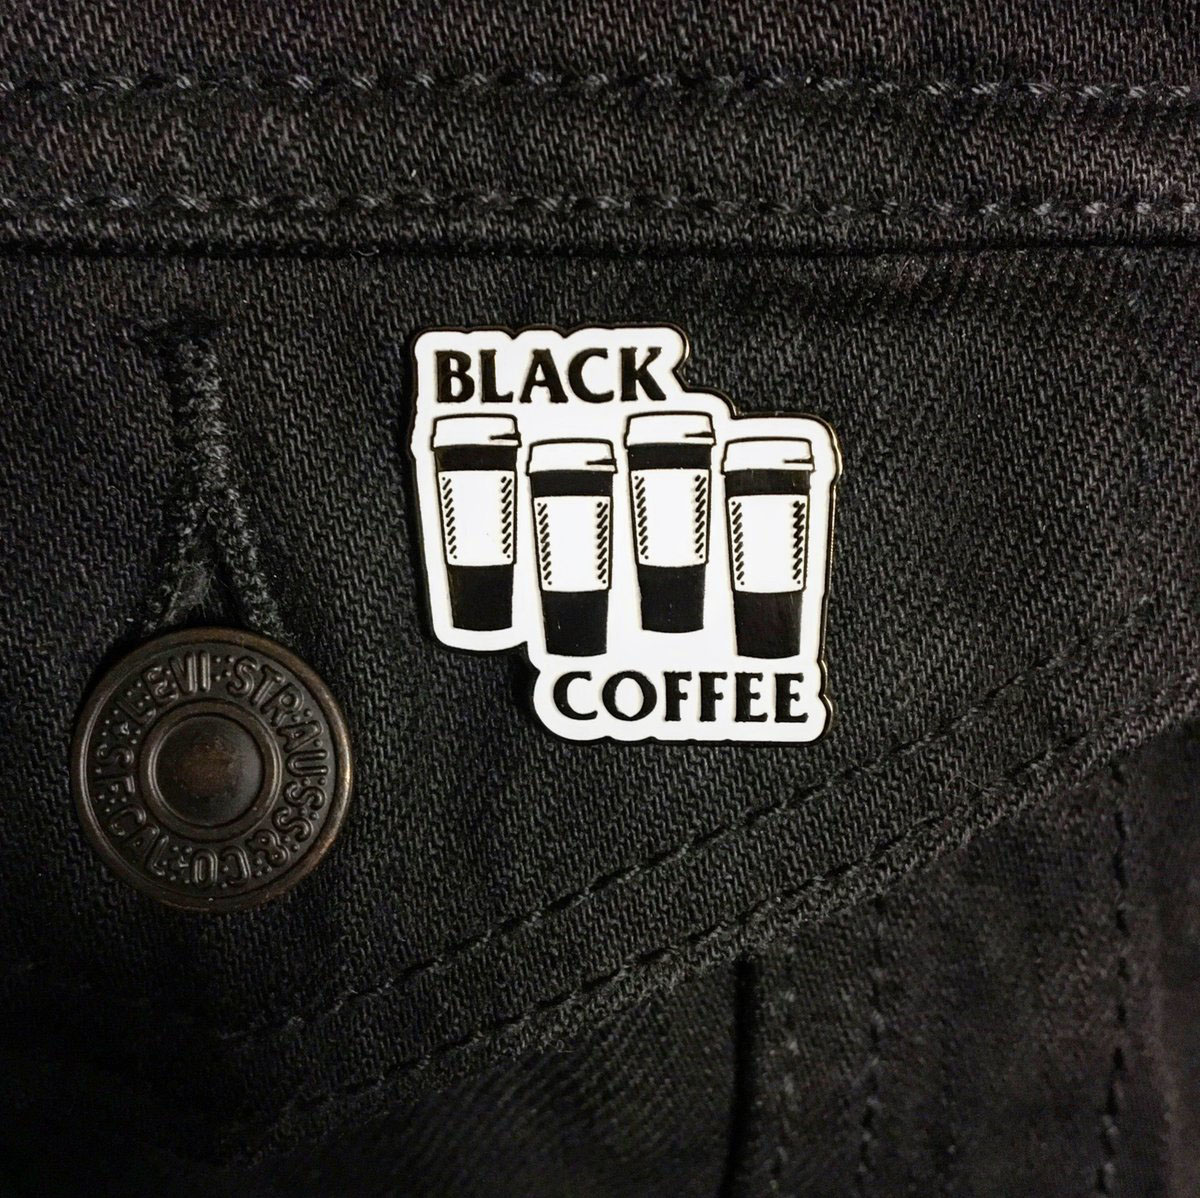 Black Coffee Enamel Pin by Bort's Pin Emporium (MP210)